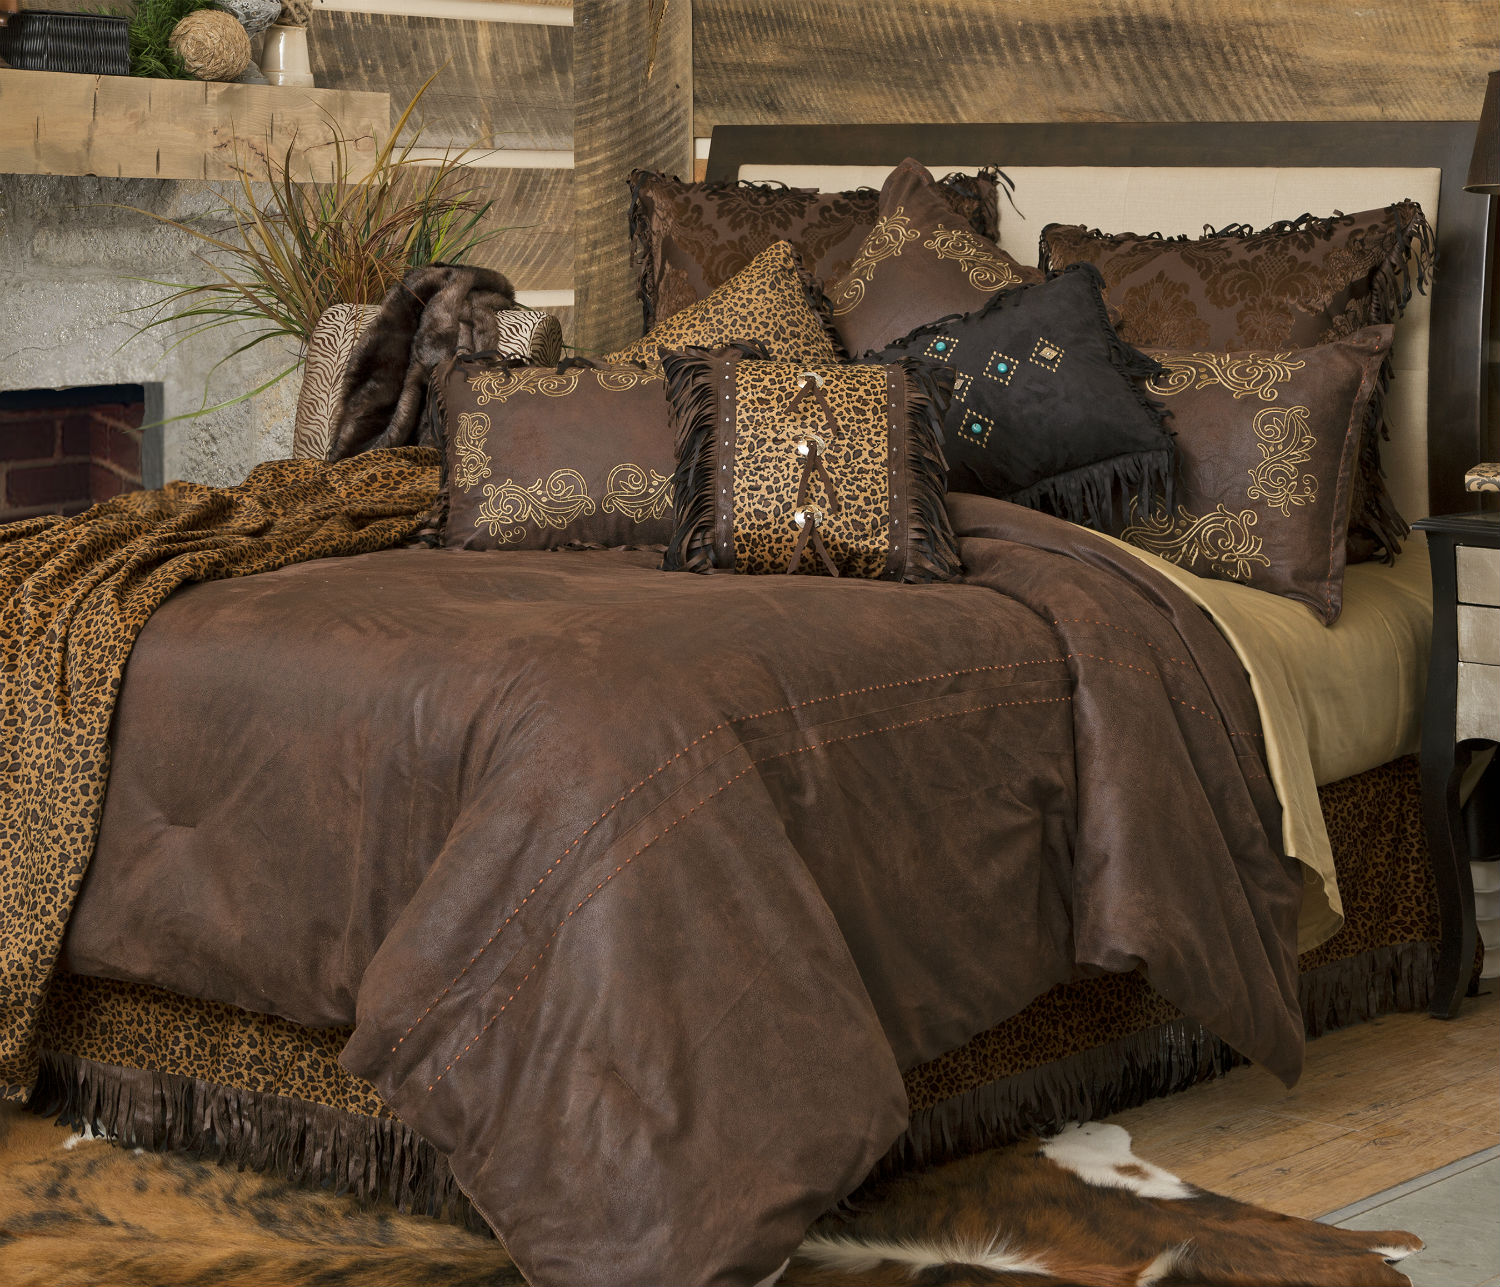 Tan Duvet Cover King Gold Rush By Carstens Lodge Bedding - Beddingsuperstore.com